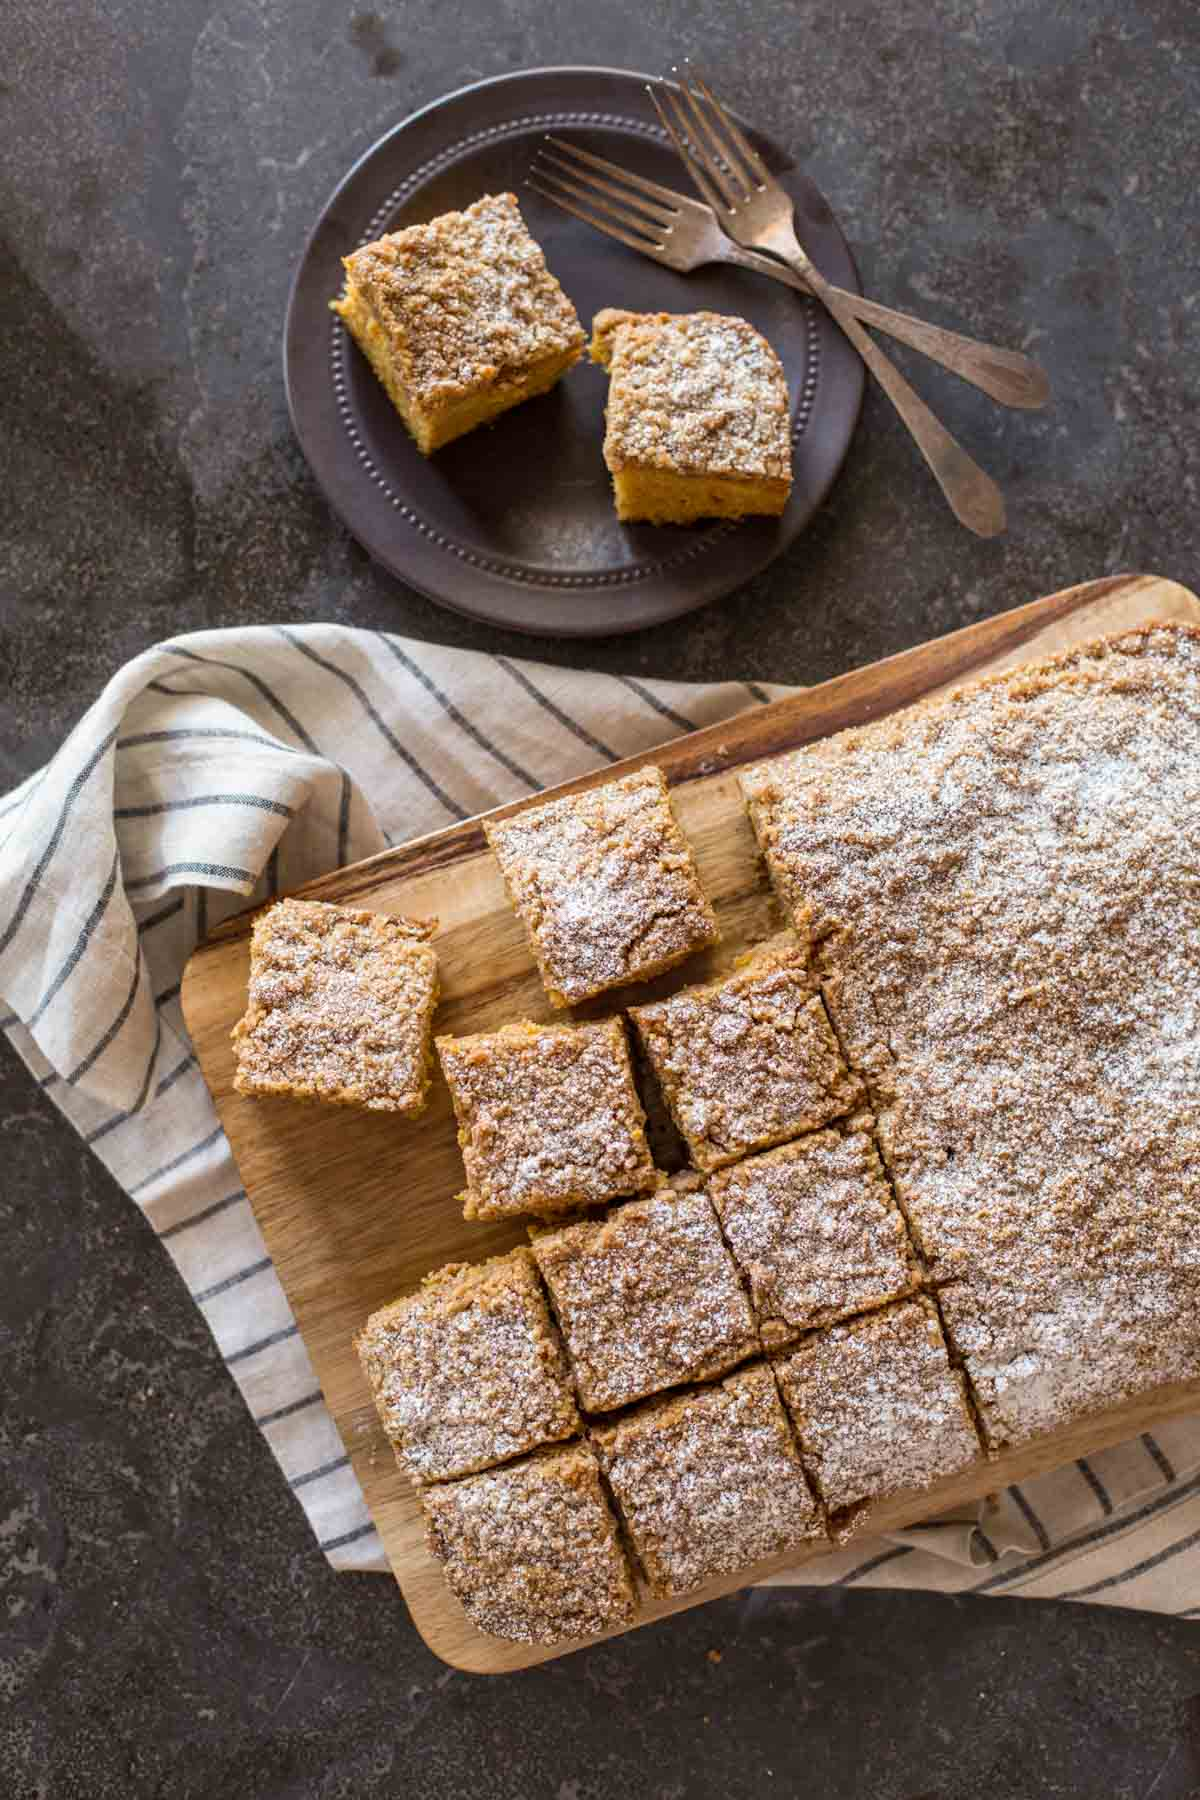 Pumpkin Spice Coffee Cake on a cutting board, with half of the cake cut into square servings, and a plate with two pieces of the cake and two forks sitting next to the cutting board.